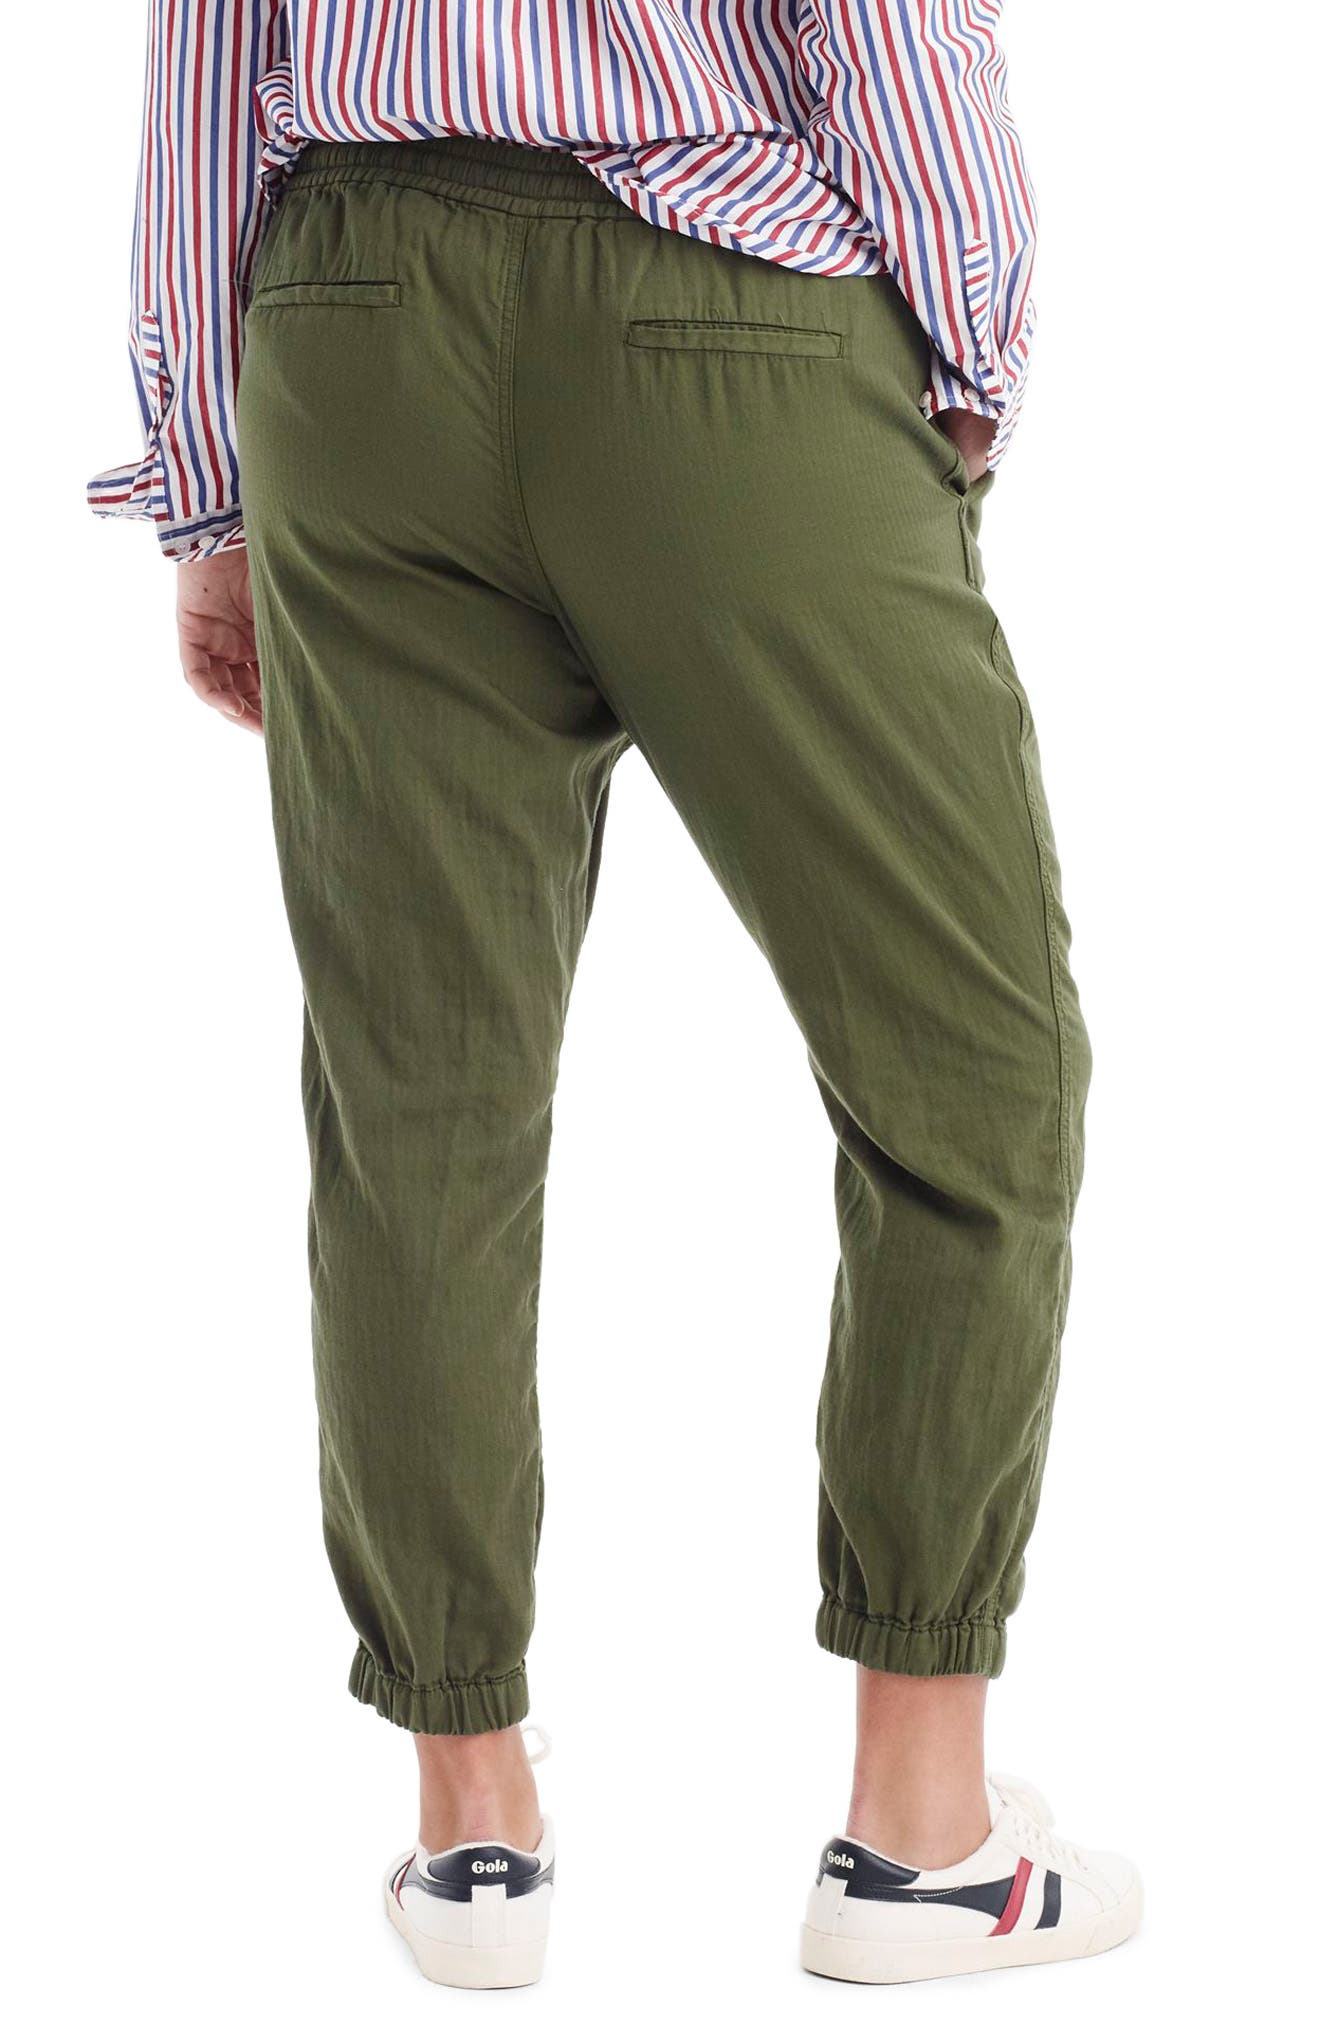 Galicia Pull-On Cargo Pants,                             Alternate thumbnail 2, color,                             300